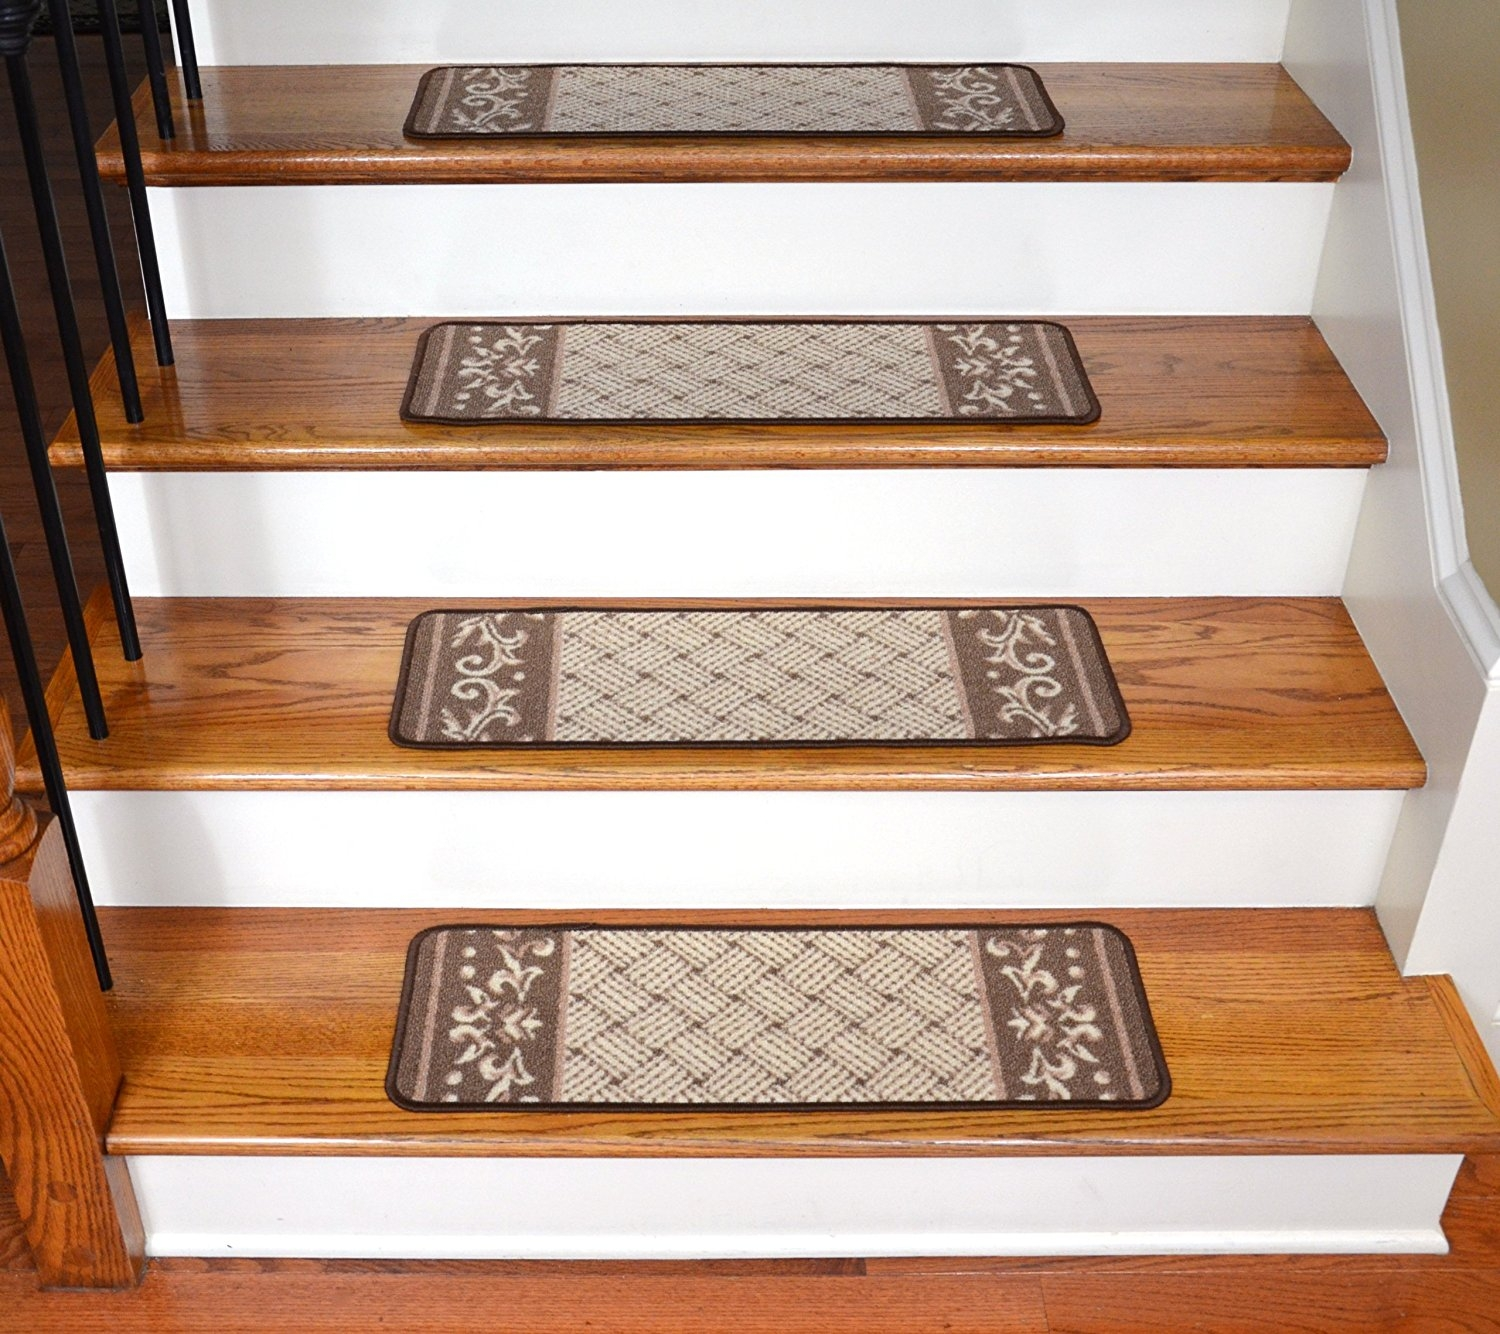 Amazon Carpet Stair Treads Caramel Scroll Border Pertaining To Wool Carpet Stair Treads (View 15 of 15)